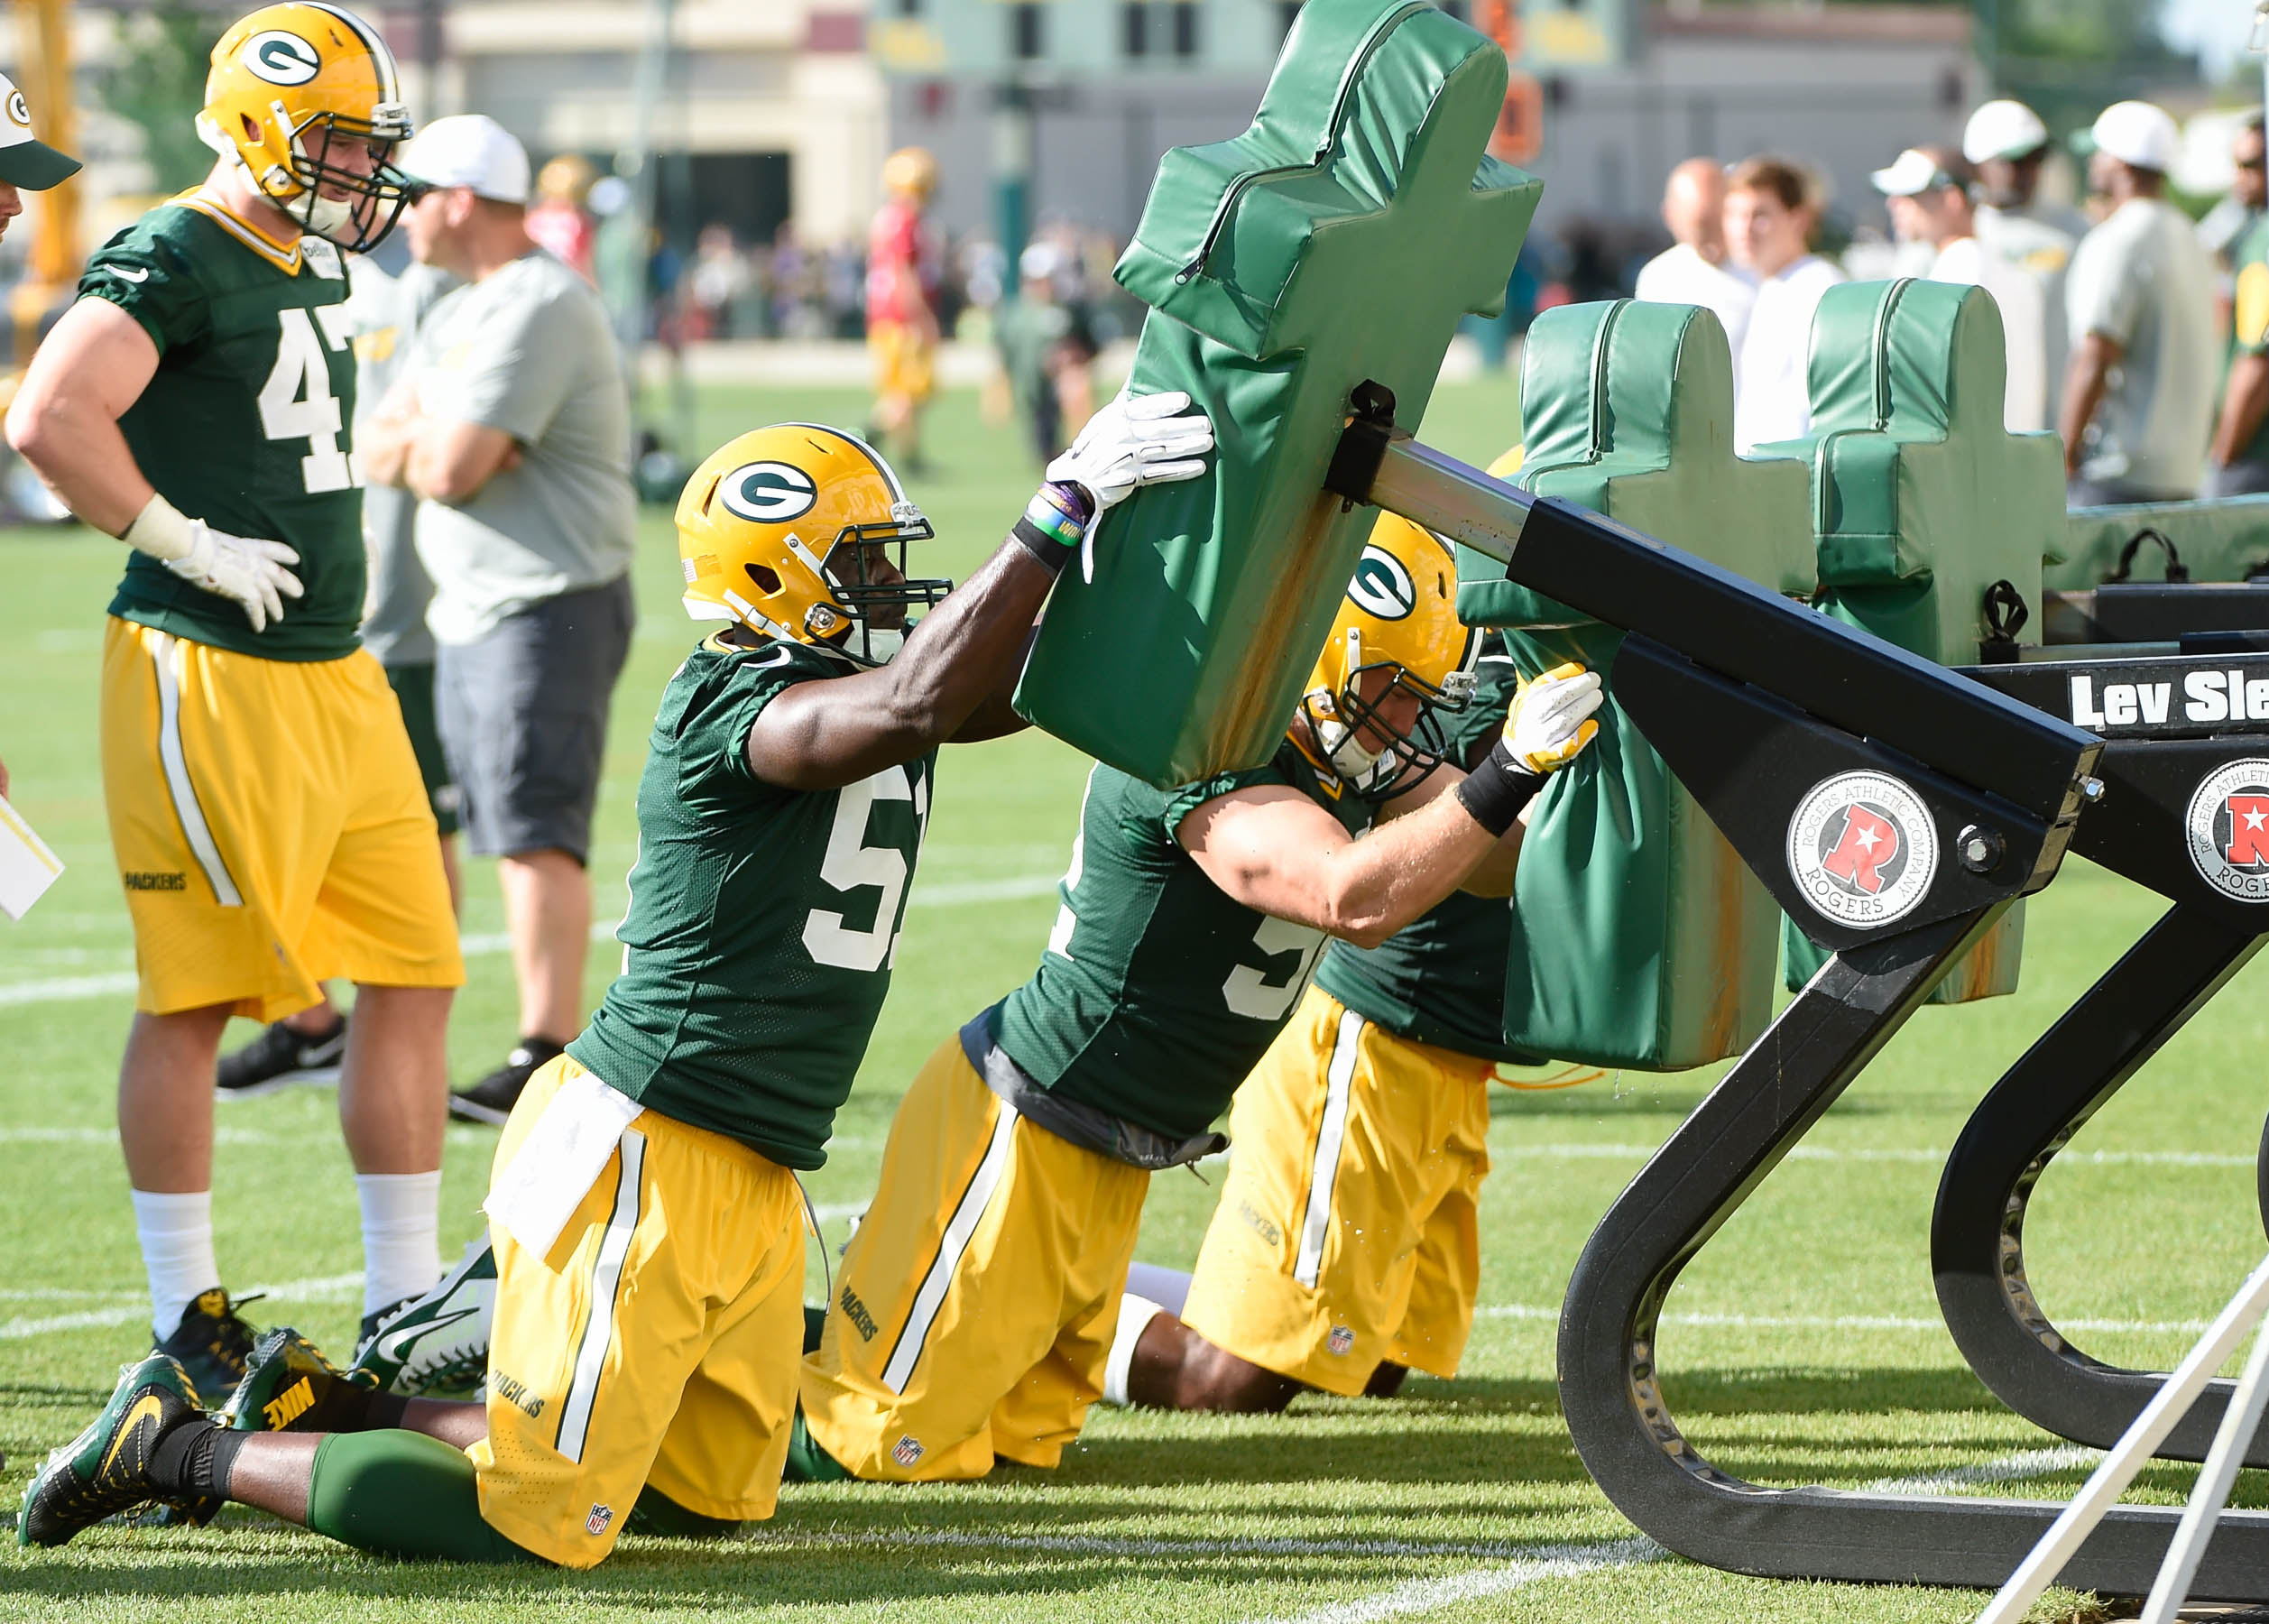 Nate Palmer (center) practices with a blocking sled while Jake Ryan (left) looks on.